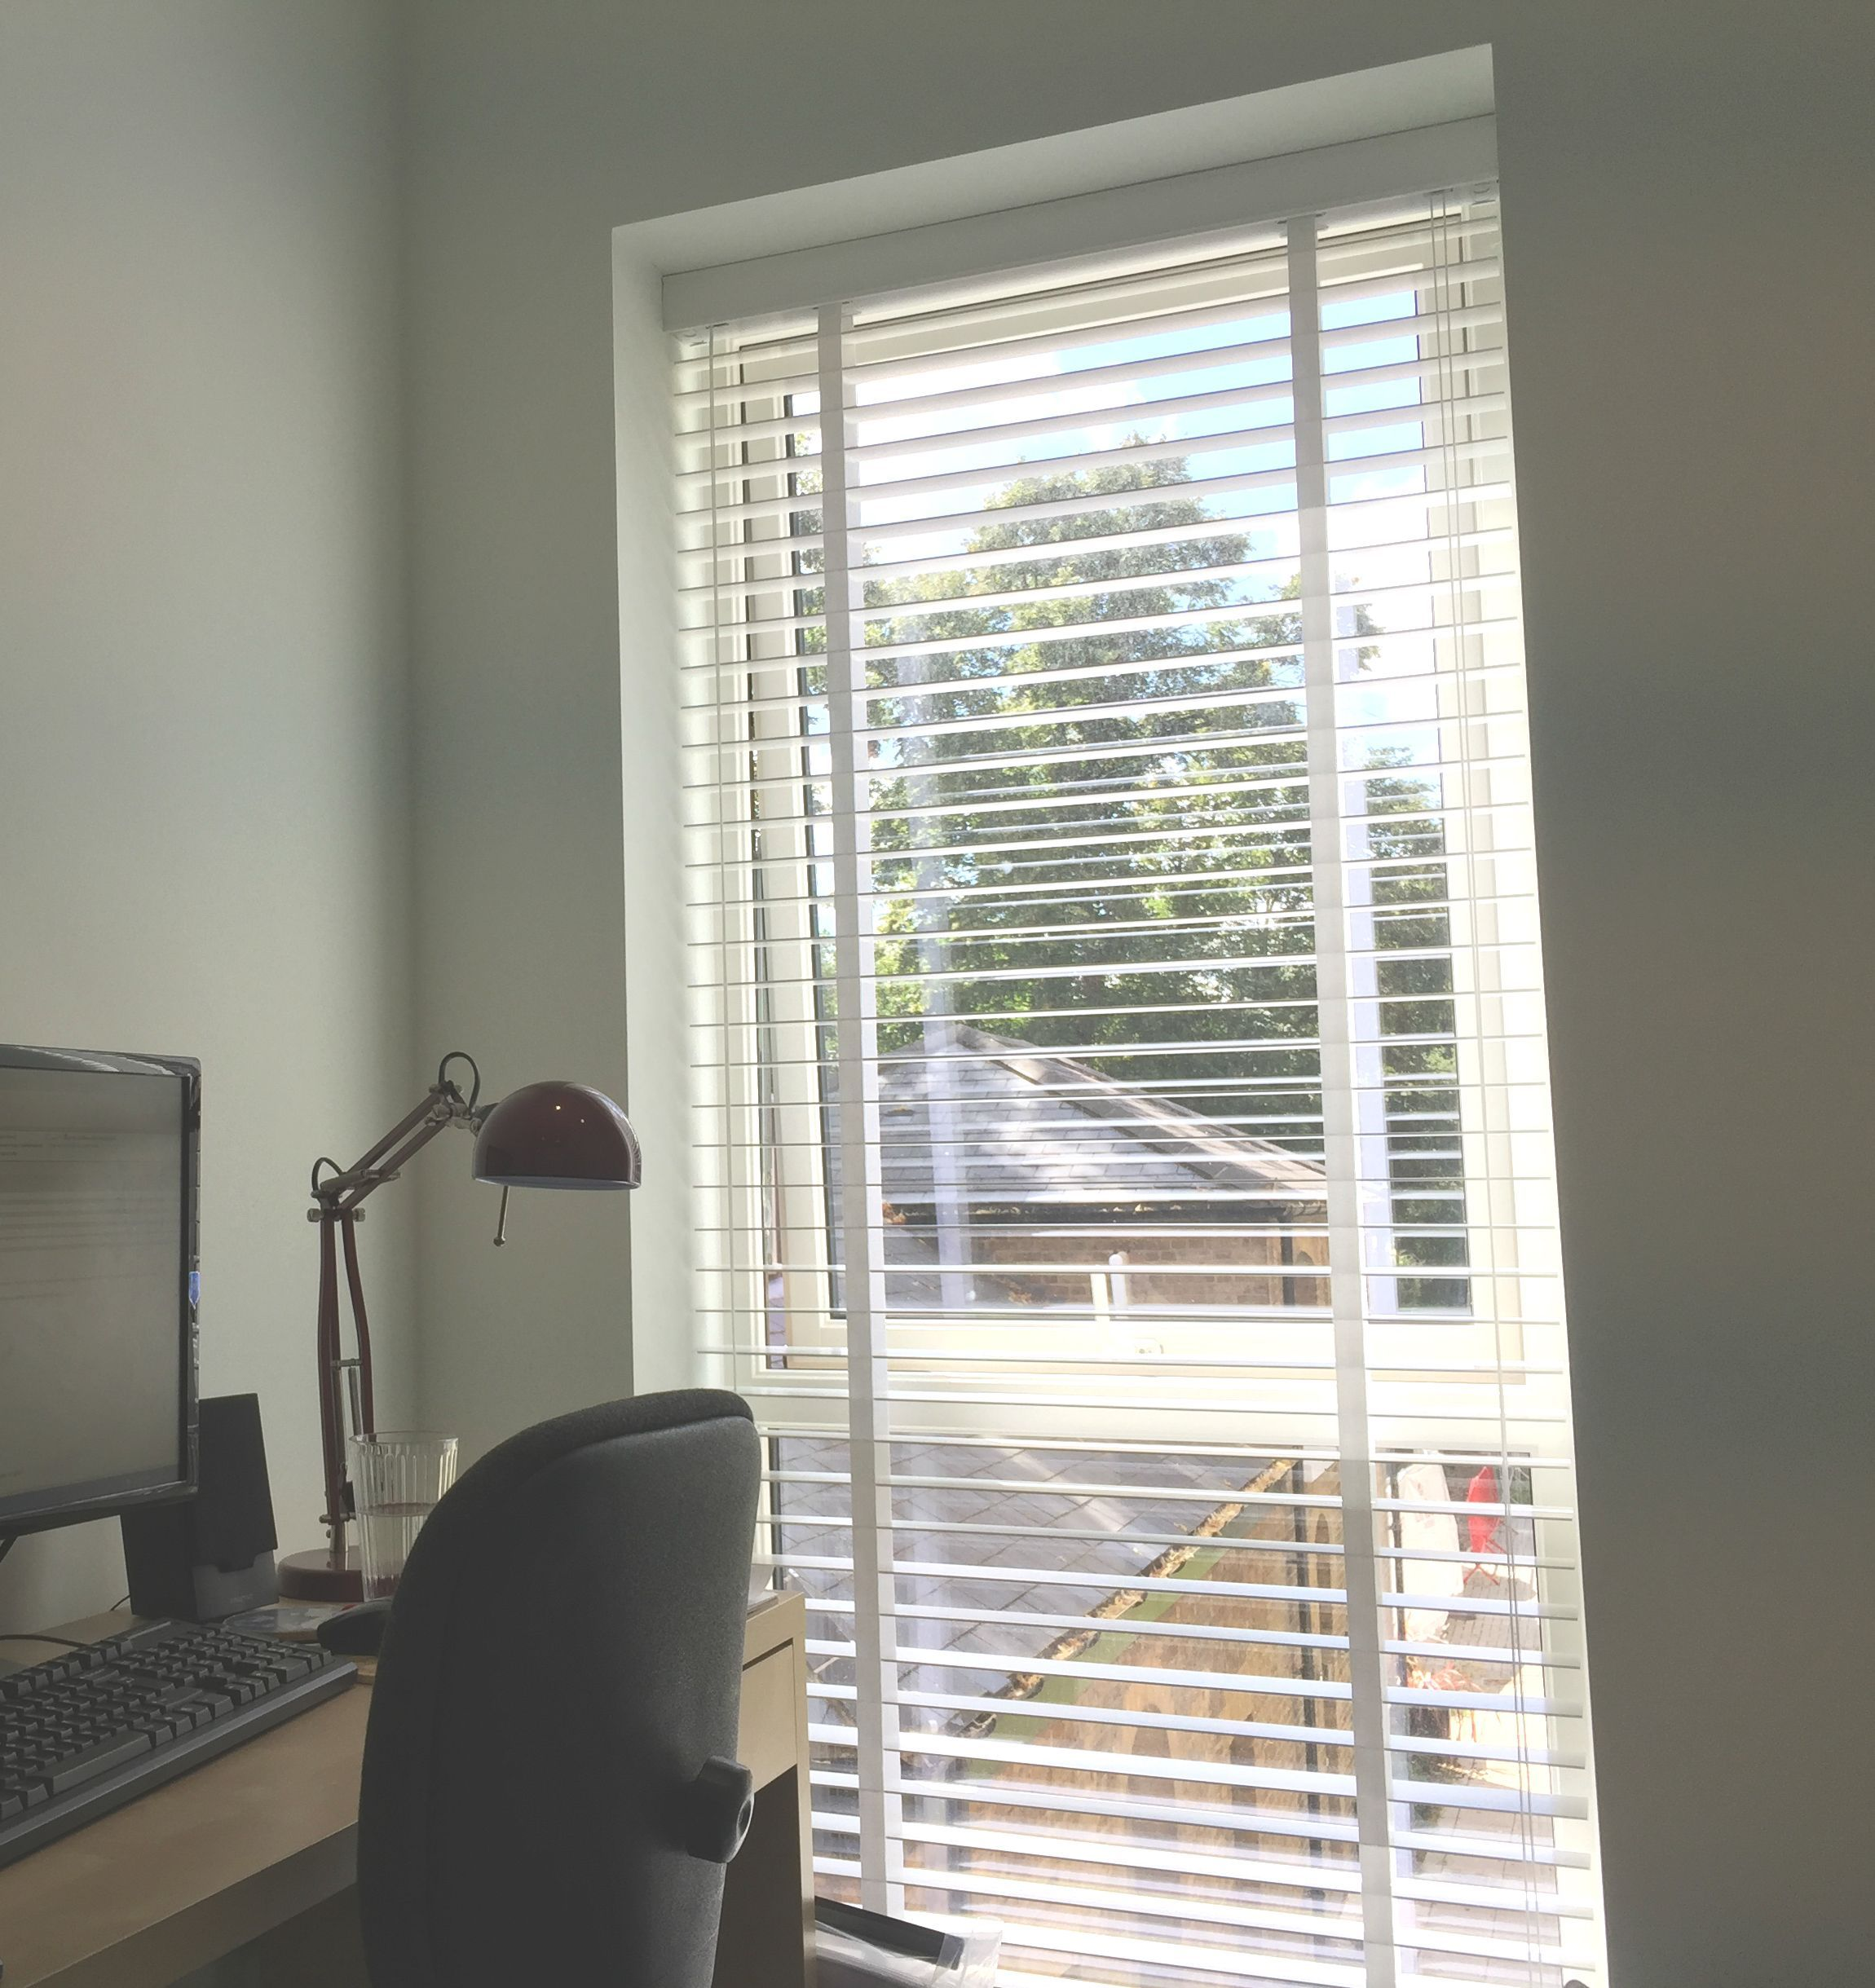 Wood Venetian Blind Pure White Blind For Home Office Study New